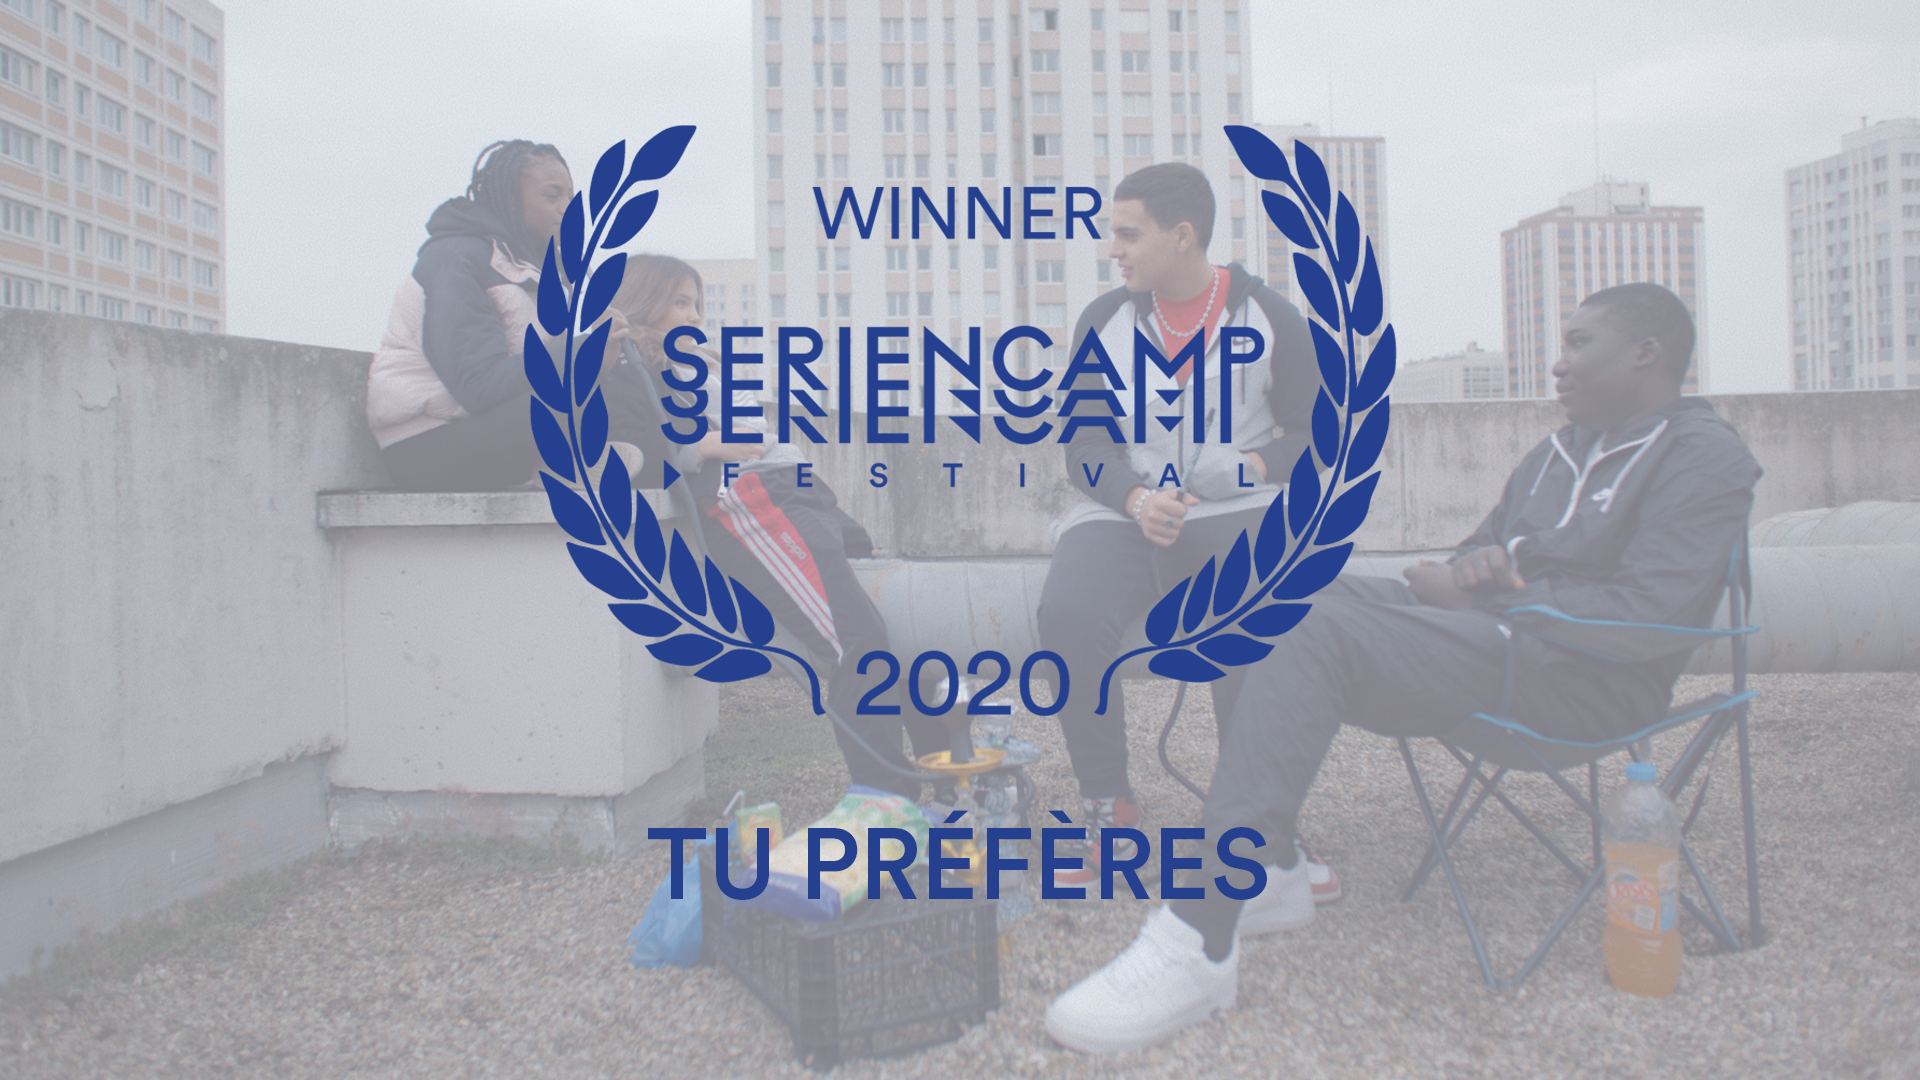 Seriencamp Festival 2020 Official Competition La Jauría